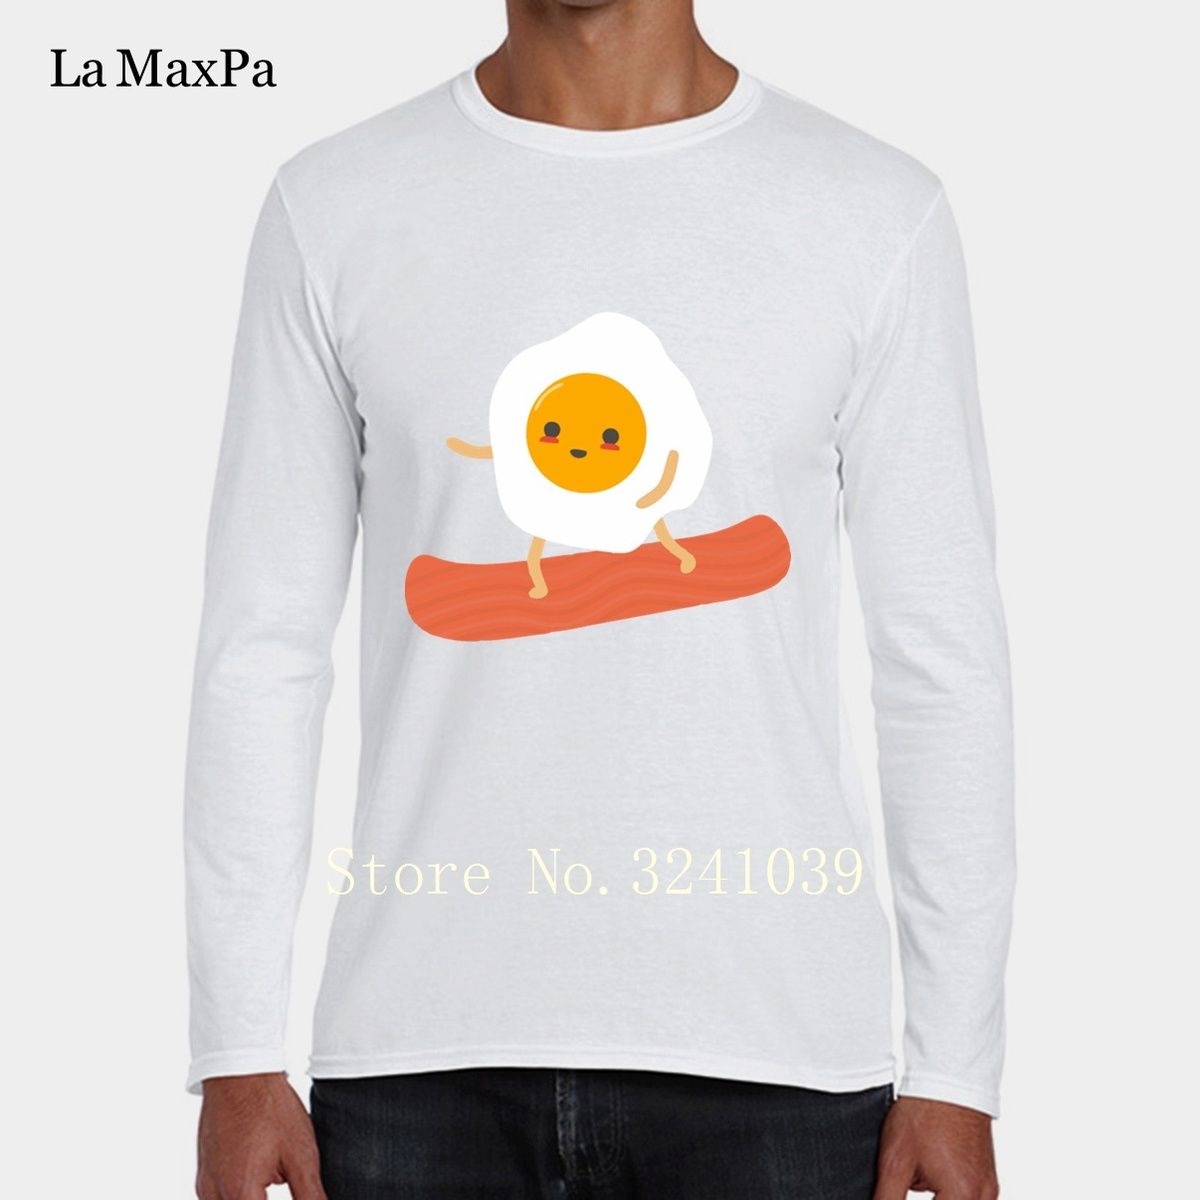 La Maxpa Knitted Fitness Famous Tee Shirt Mens Funny Eggs And Bacon Popular Men T-Shirt 2018 Big Sizes Gents T Shirts Hot Sale